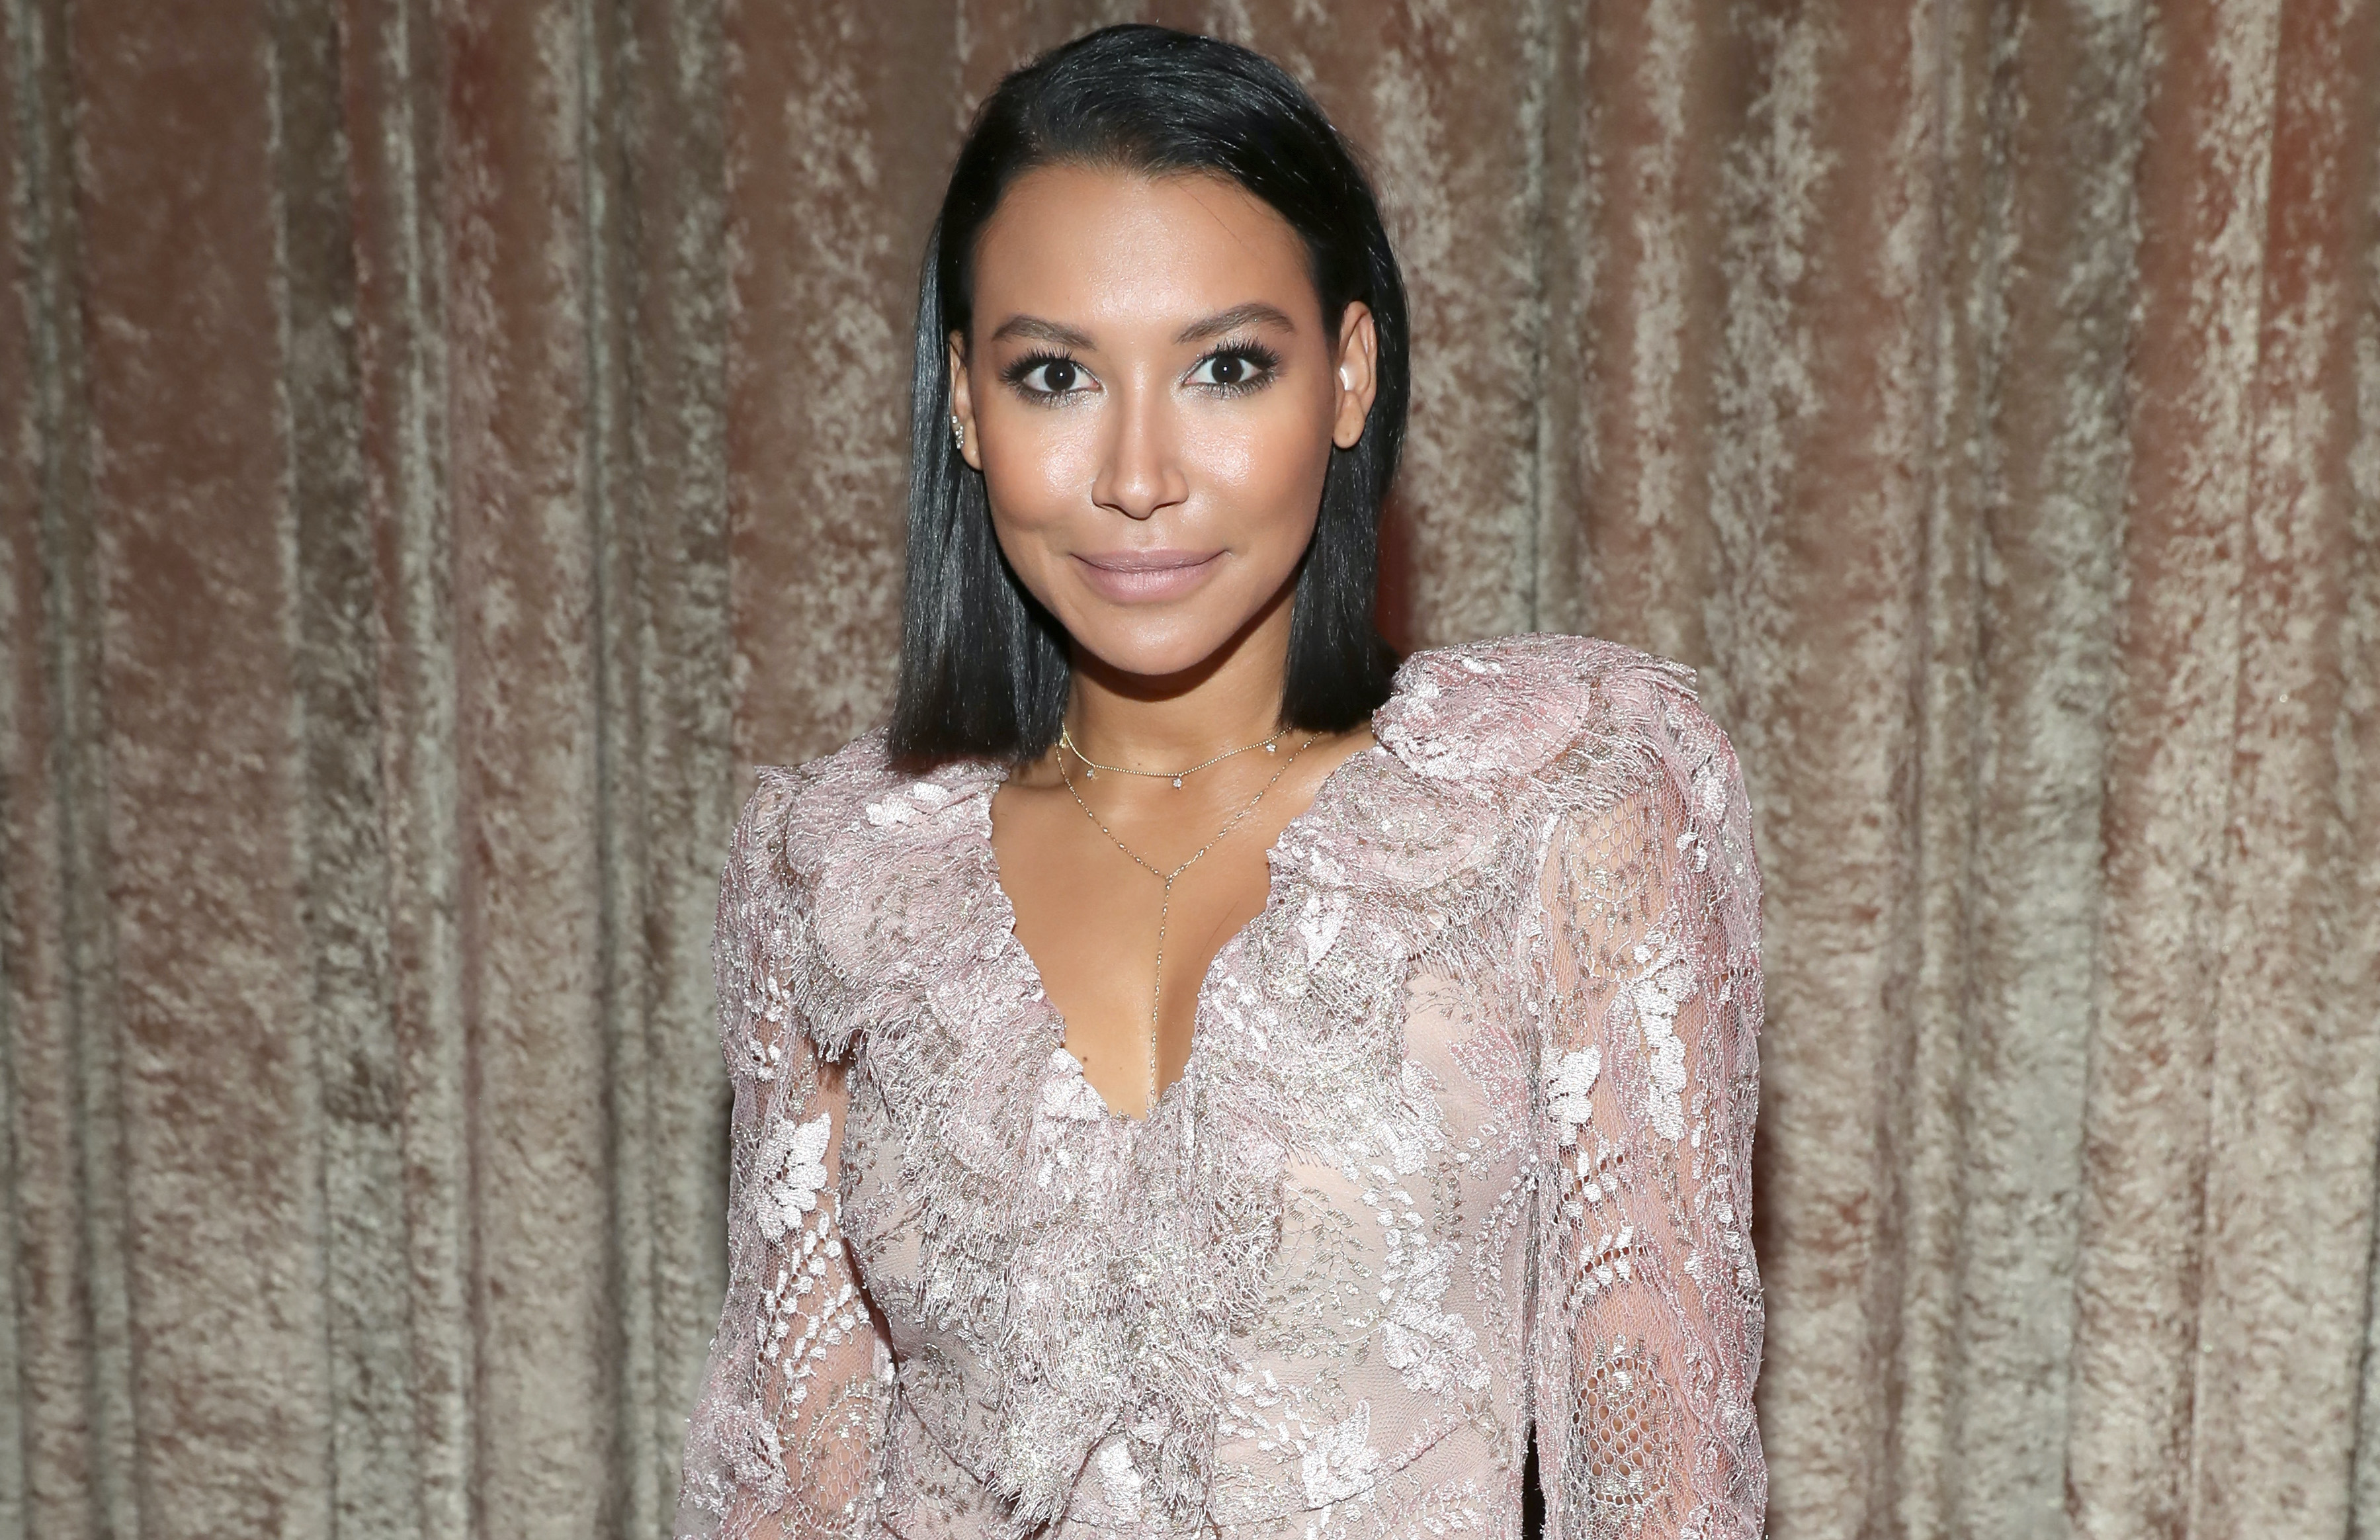 Naya Rivera attends the 2017 Point Honors at The Beverly Hilton Hotel on October 7, 2017 in Beverly Hills, California.